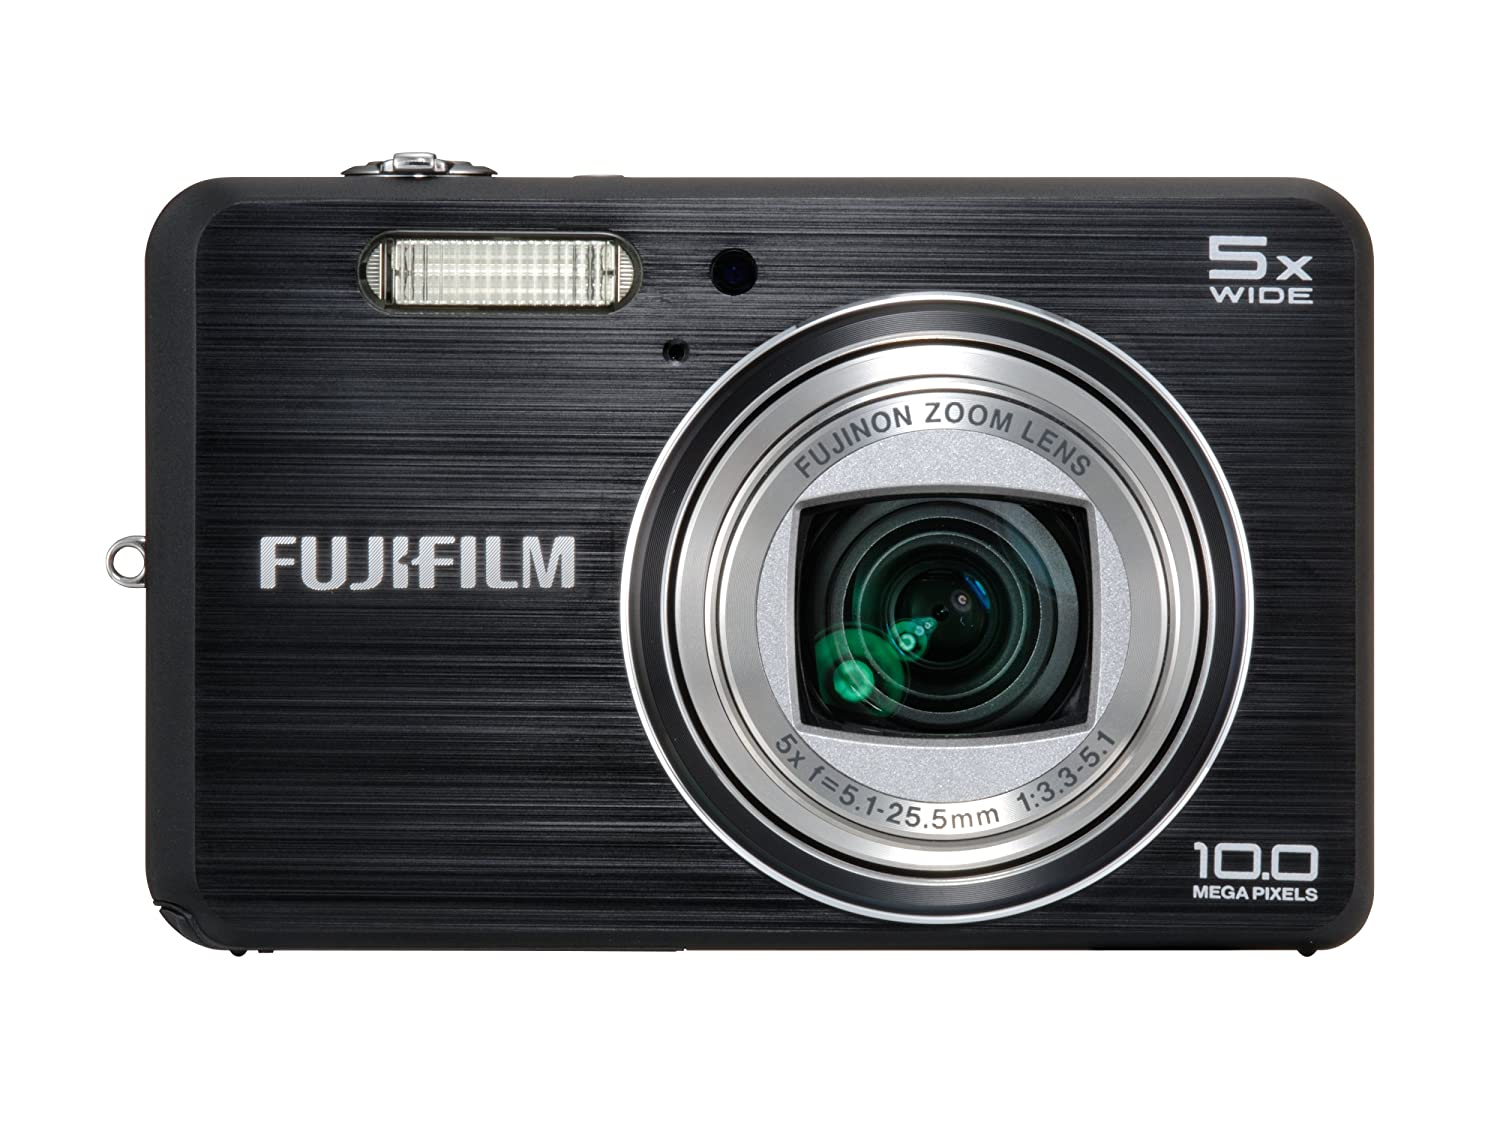 FUJIFILM FINEPIX J150W CAMERA DRIVERS WINDOWS 7